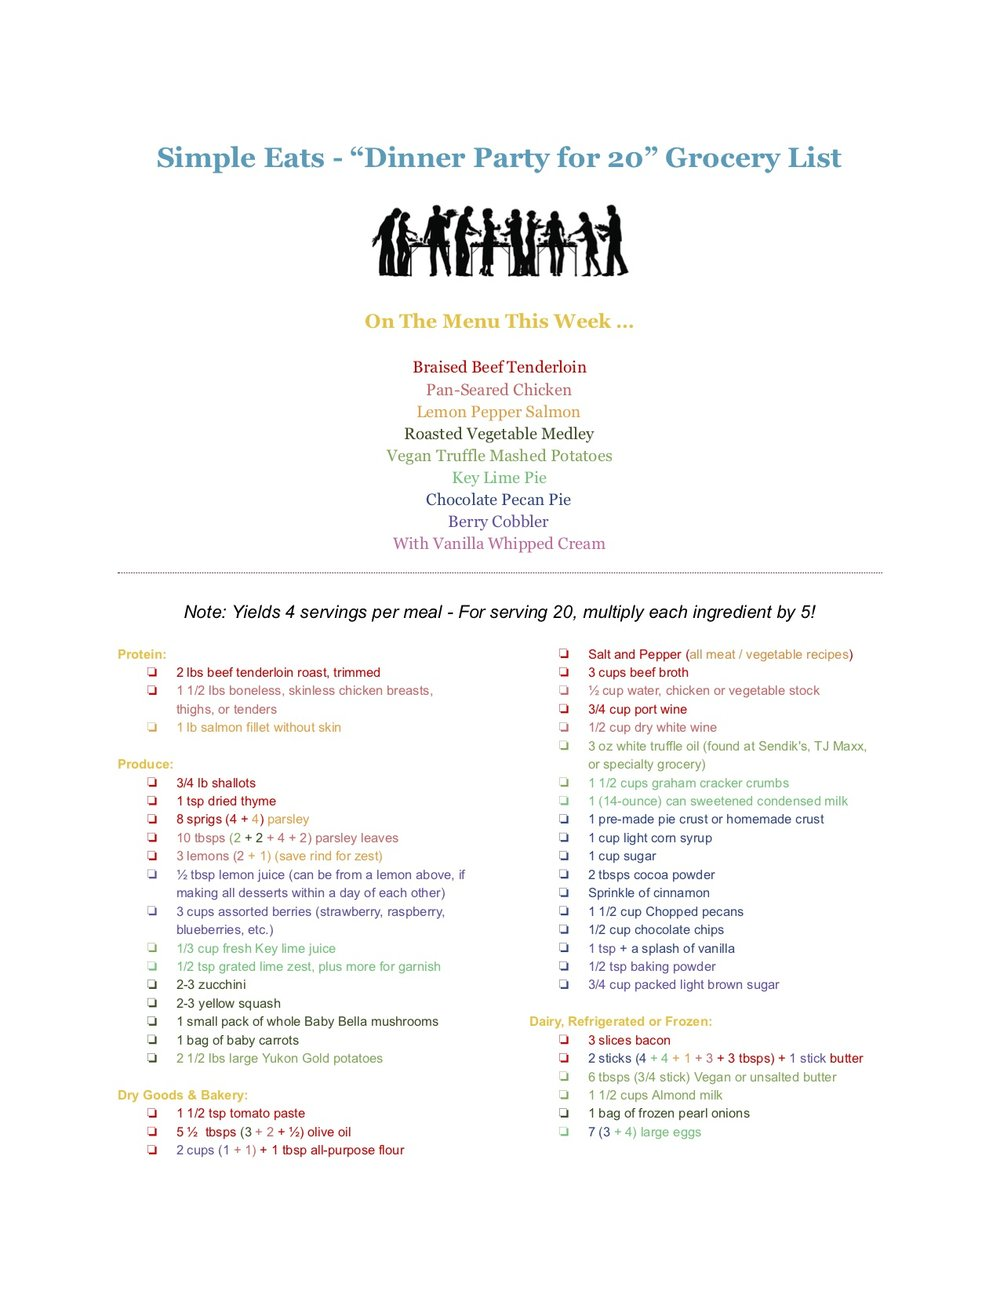 "Simple Eats - ""Dinner Party for 20"" Grocery List - Google Docs copy.jpg"